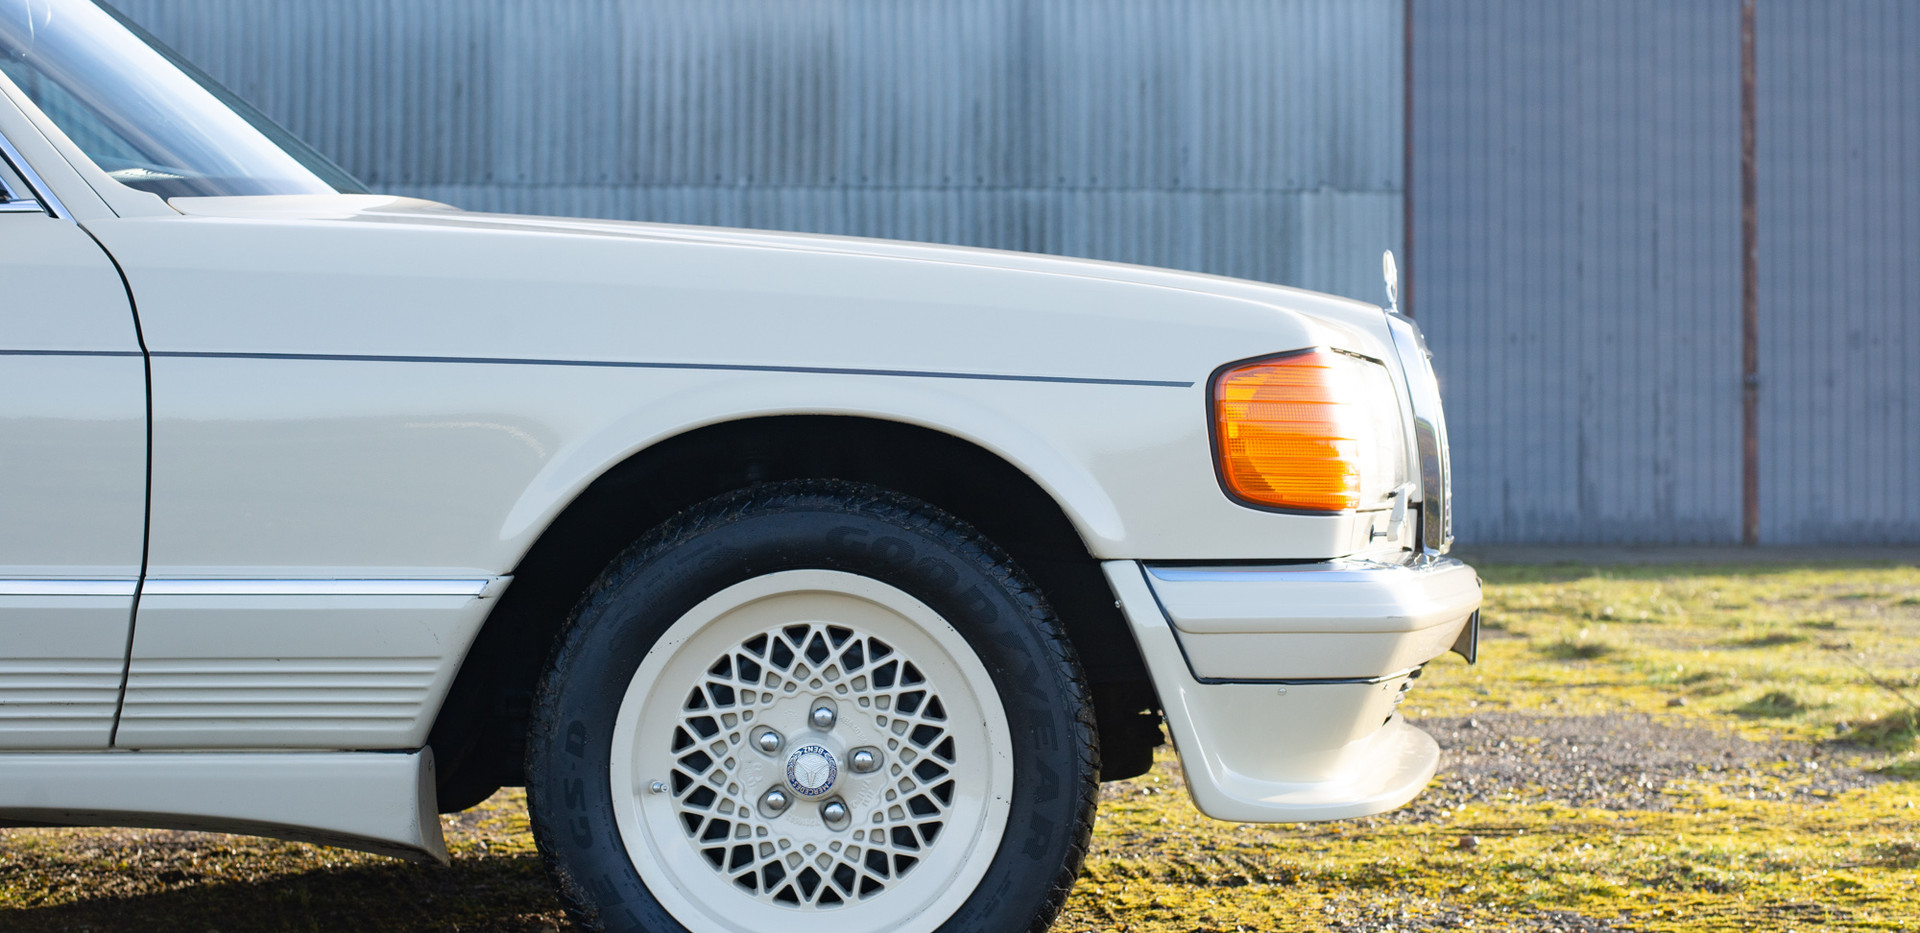 W126 Cream 500SEL for sale uk-9.jpg